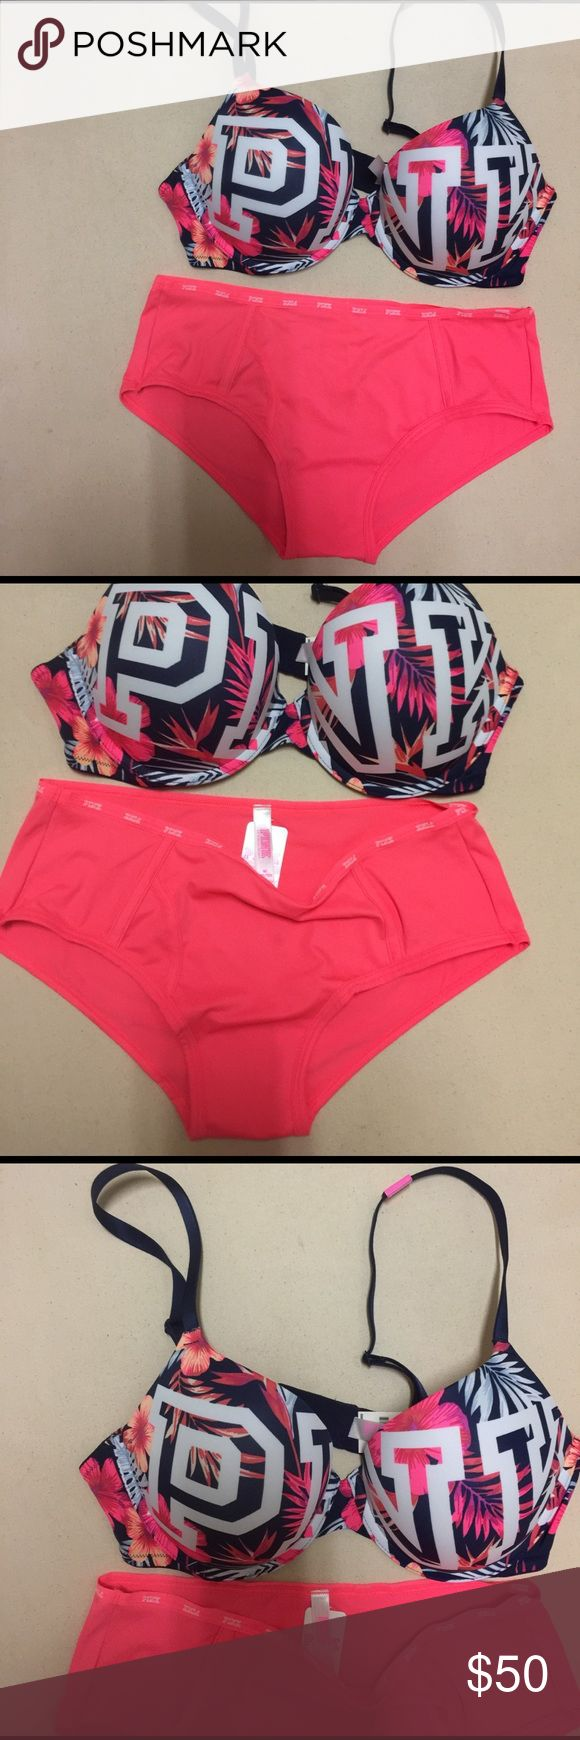 NEW: VS Pink Bra And Panty, 36C/M Both are New. Bra, Padded, 36C; Panty, Medium PINK Victoria's Secret Intimates & Sleepwear Bras